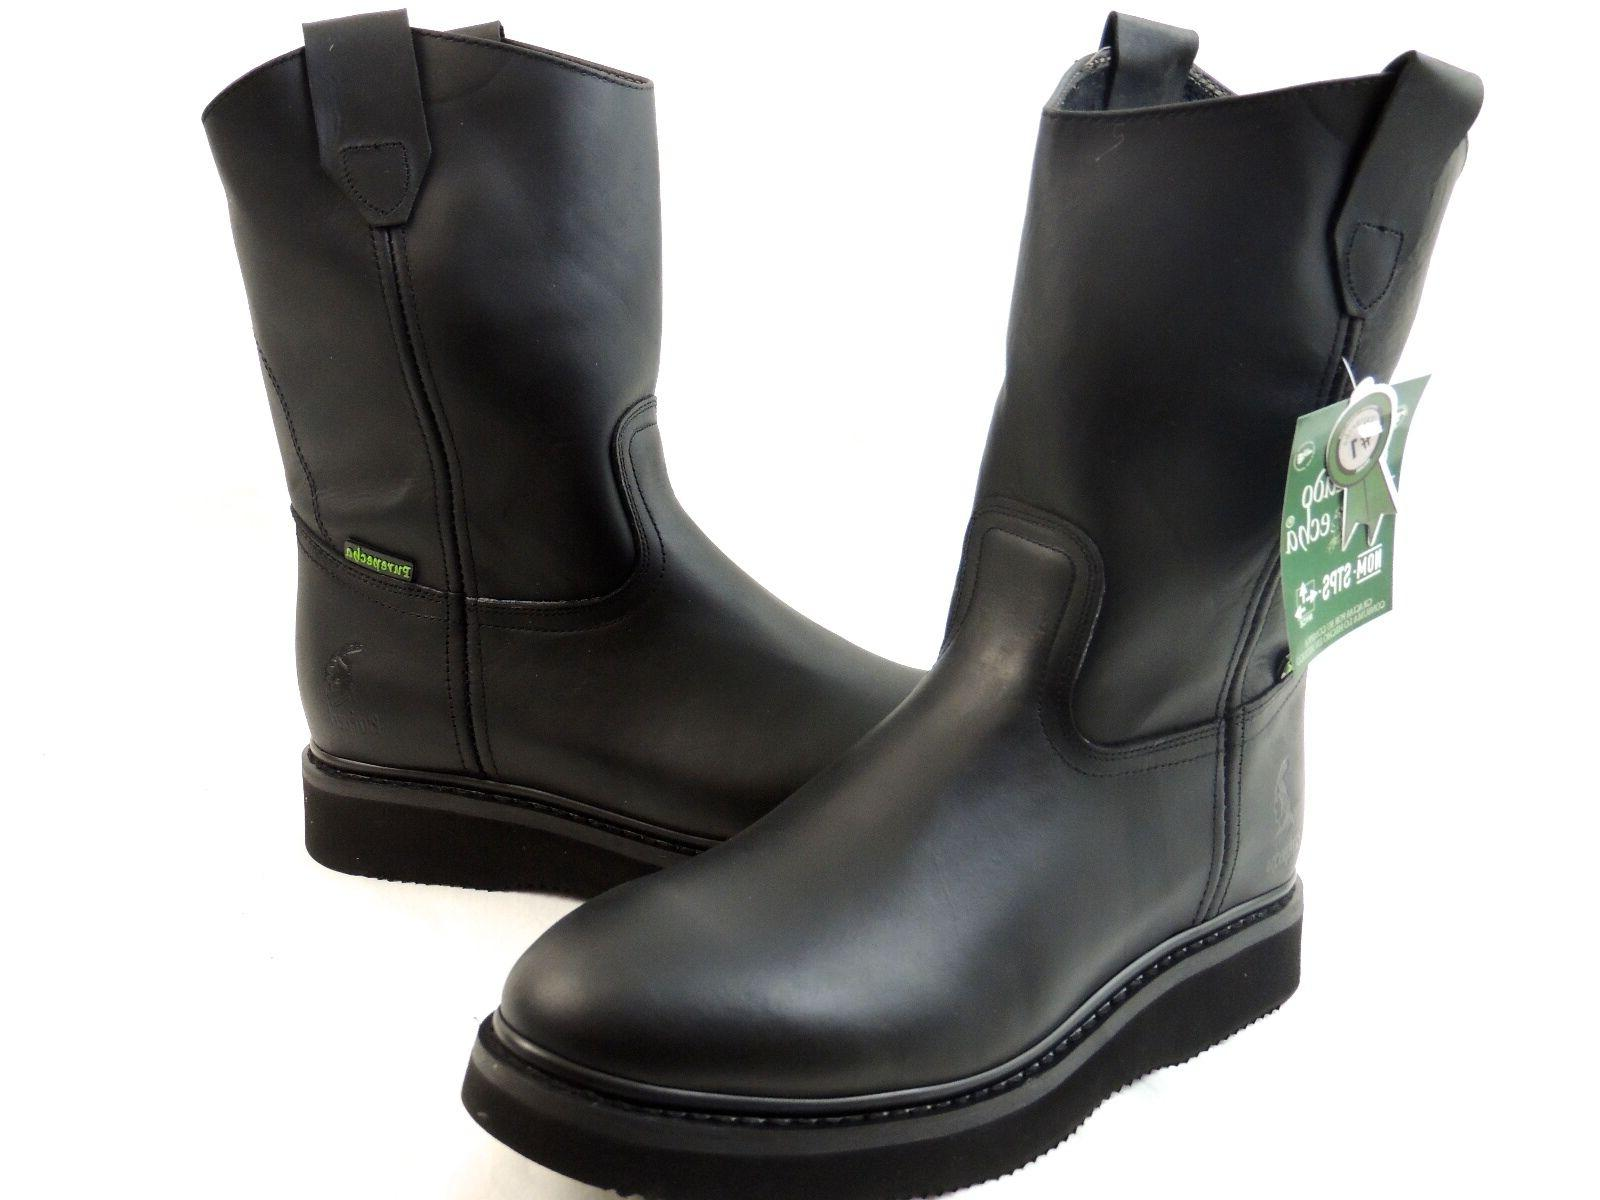 MEN'S WORK BOOTS GENUINE LEATHER BLACK COLOR WESTERN BOOTS C